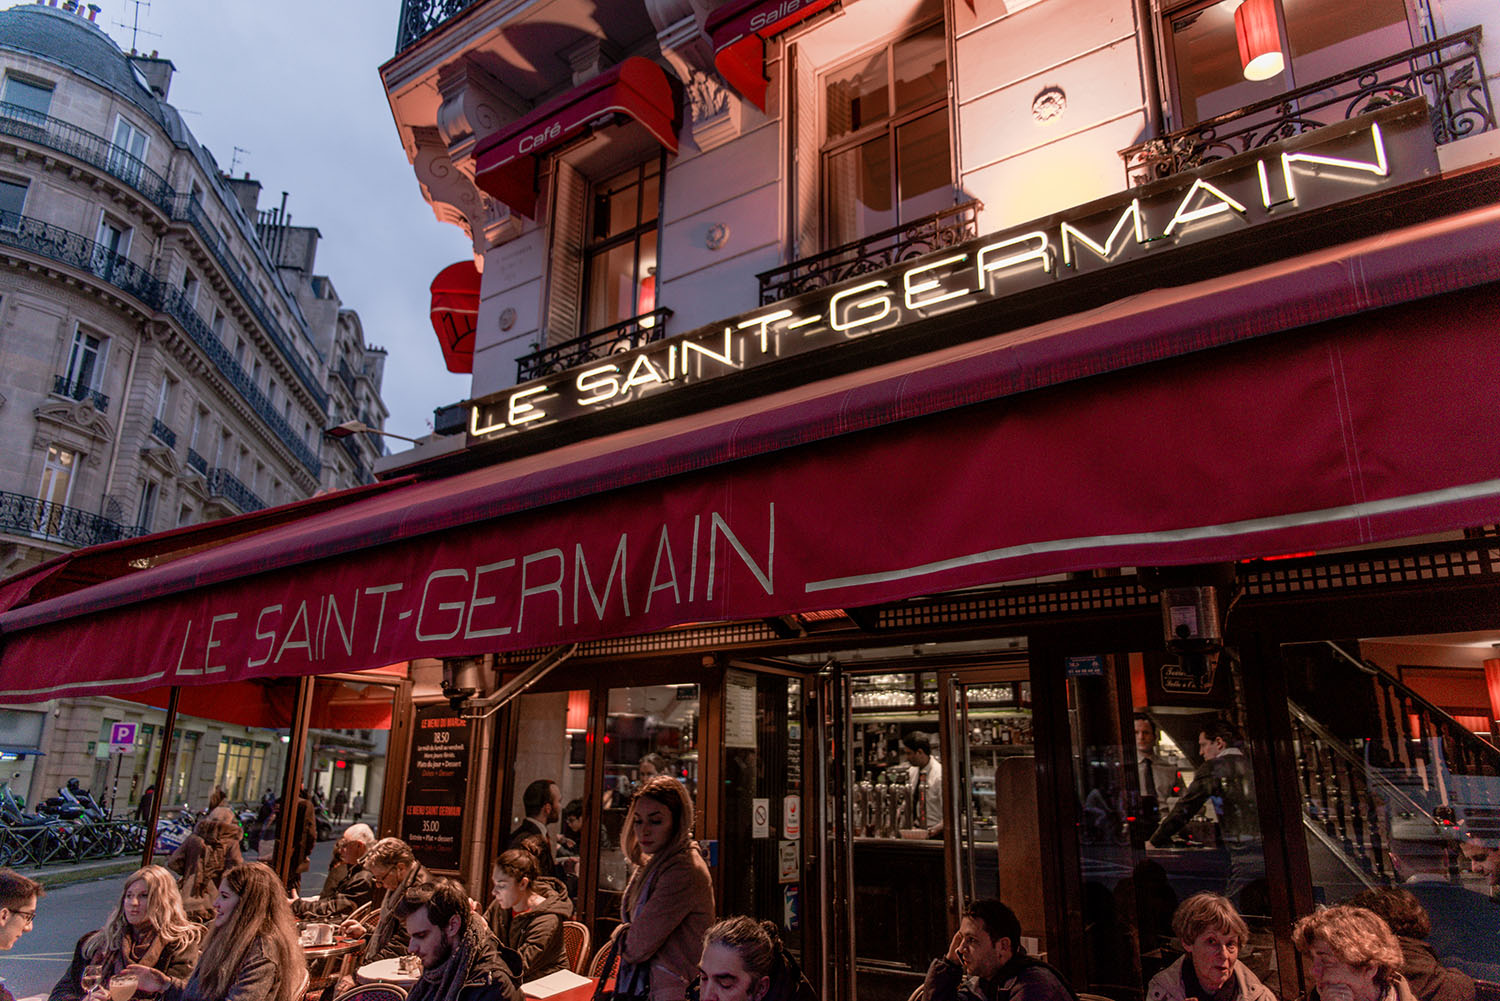 Le Saint Germain